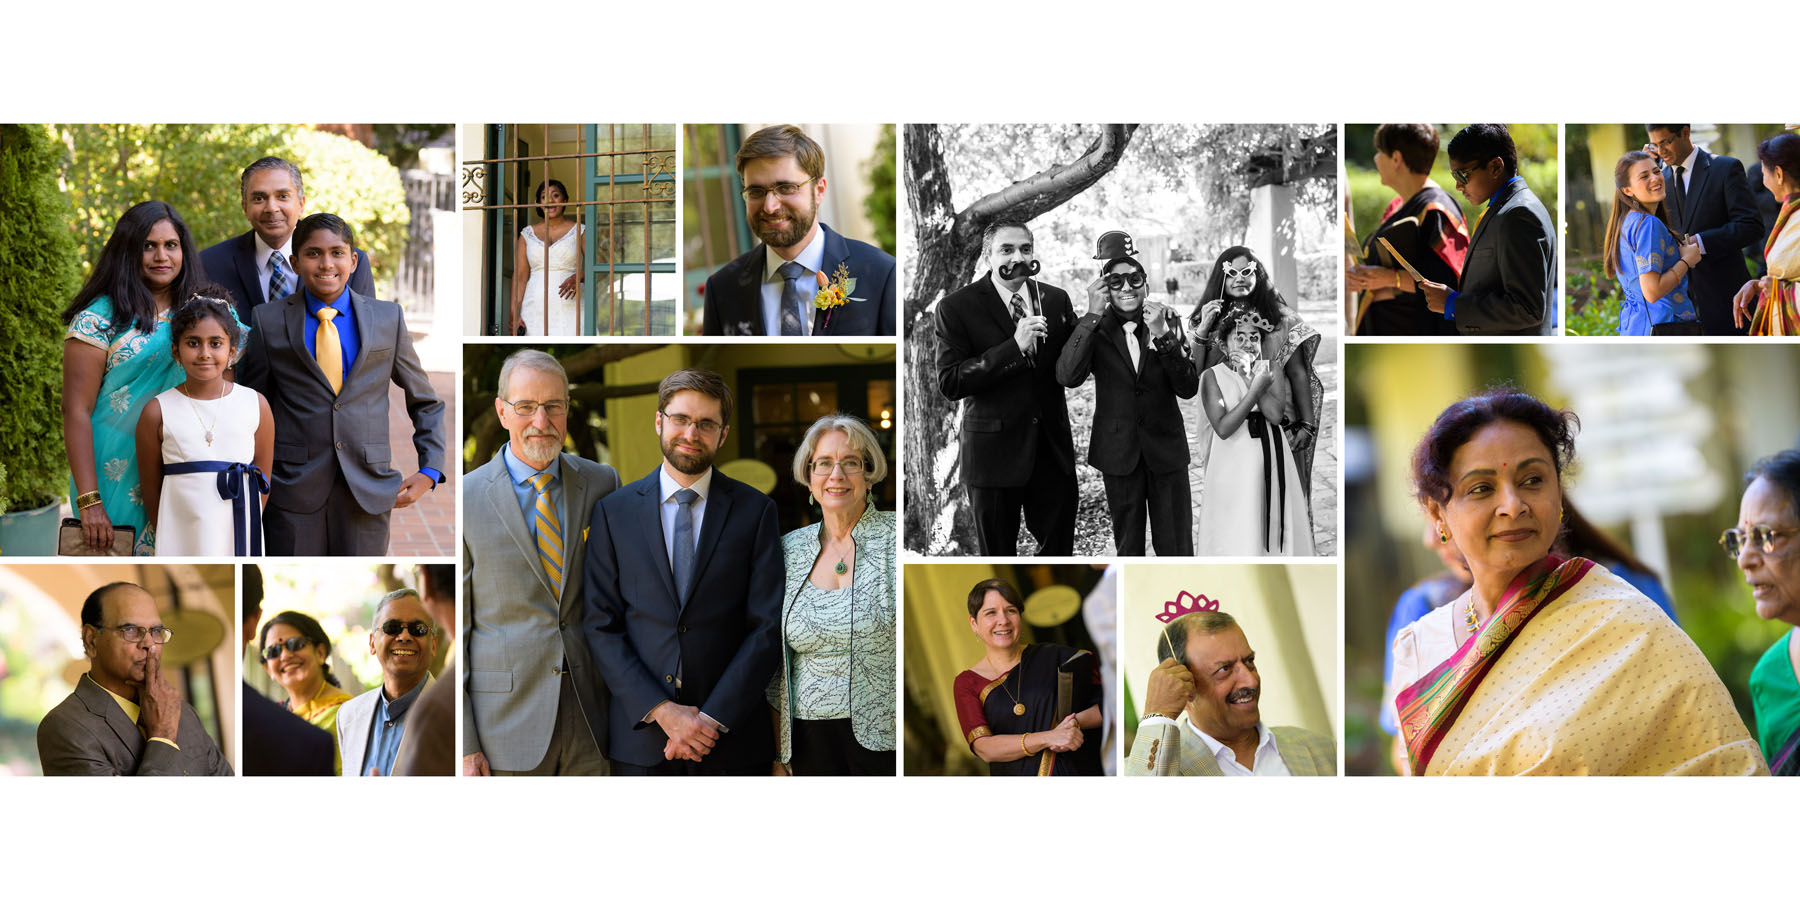 Candids of guests –Allied Arts Guild –Menlo Park wedding photos –by Bay Area wedding photographer Chris Schmauch